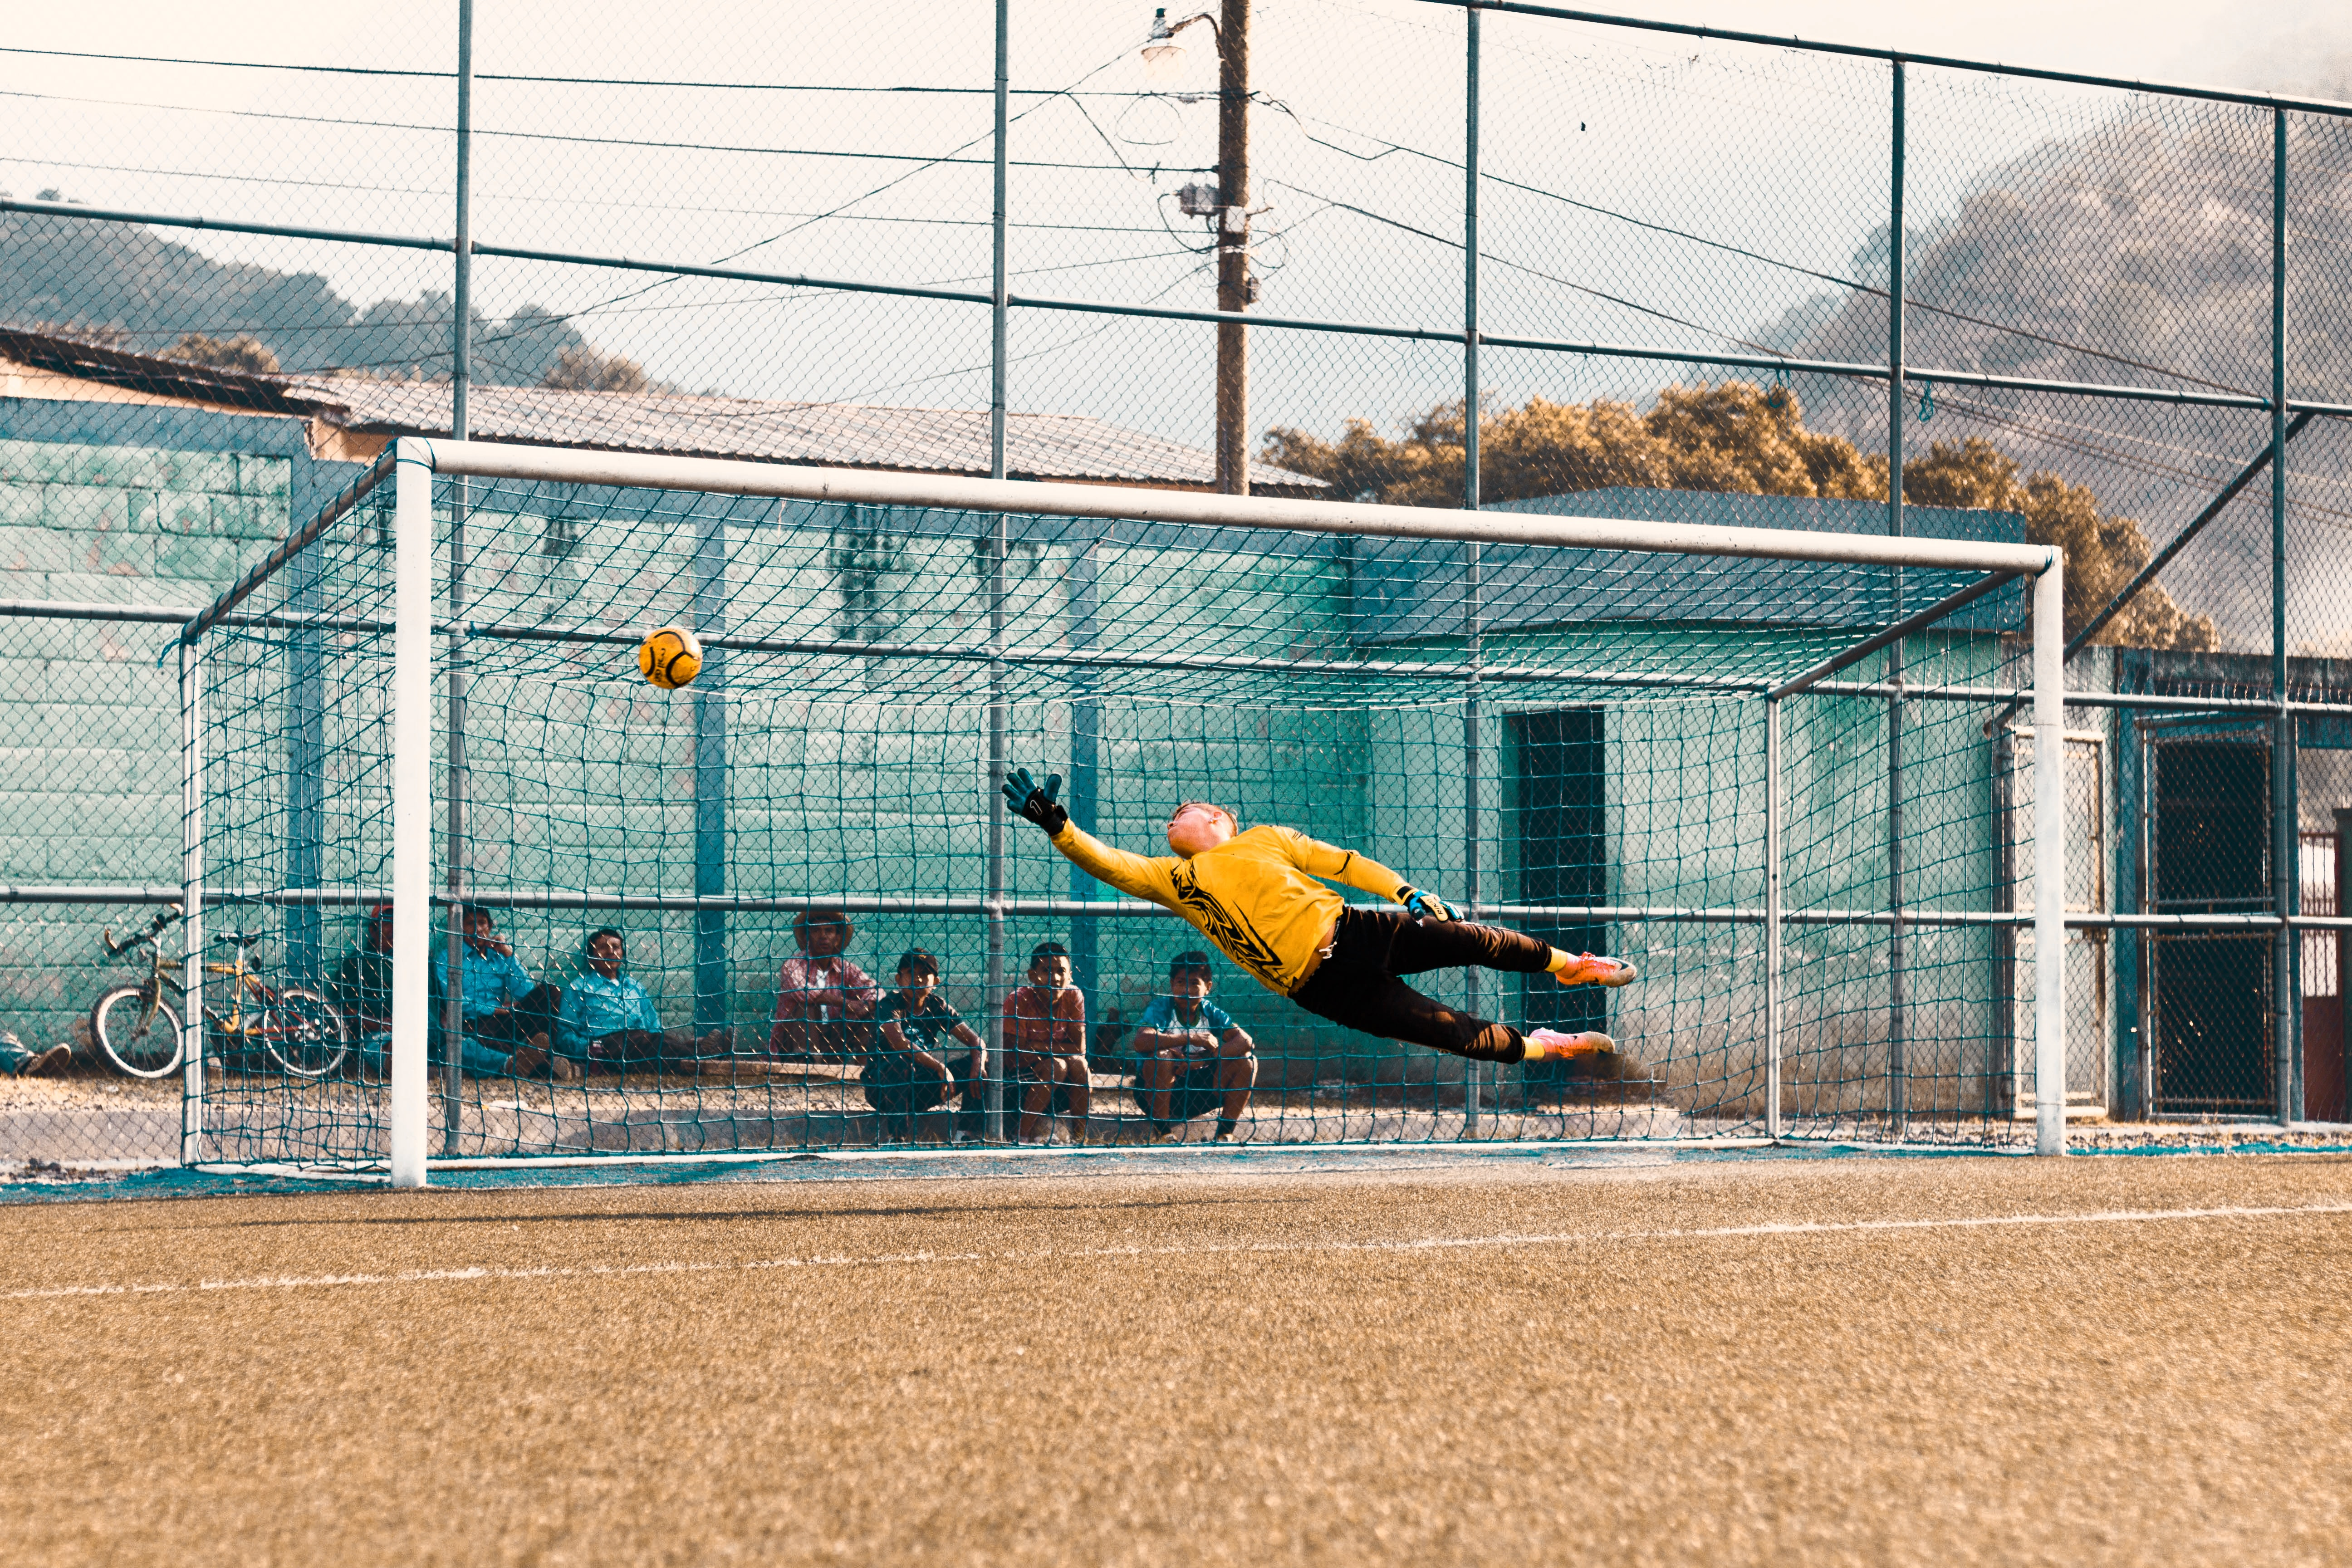 man jump about to hold ball near net